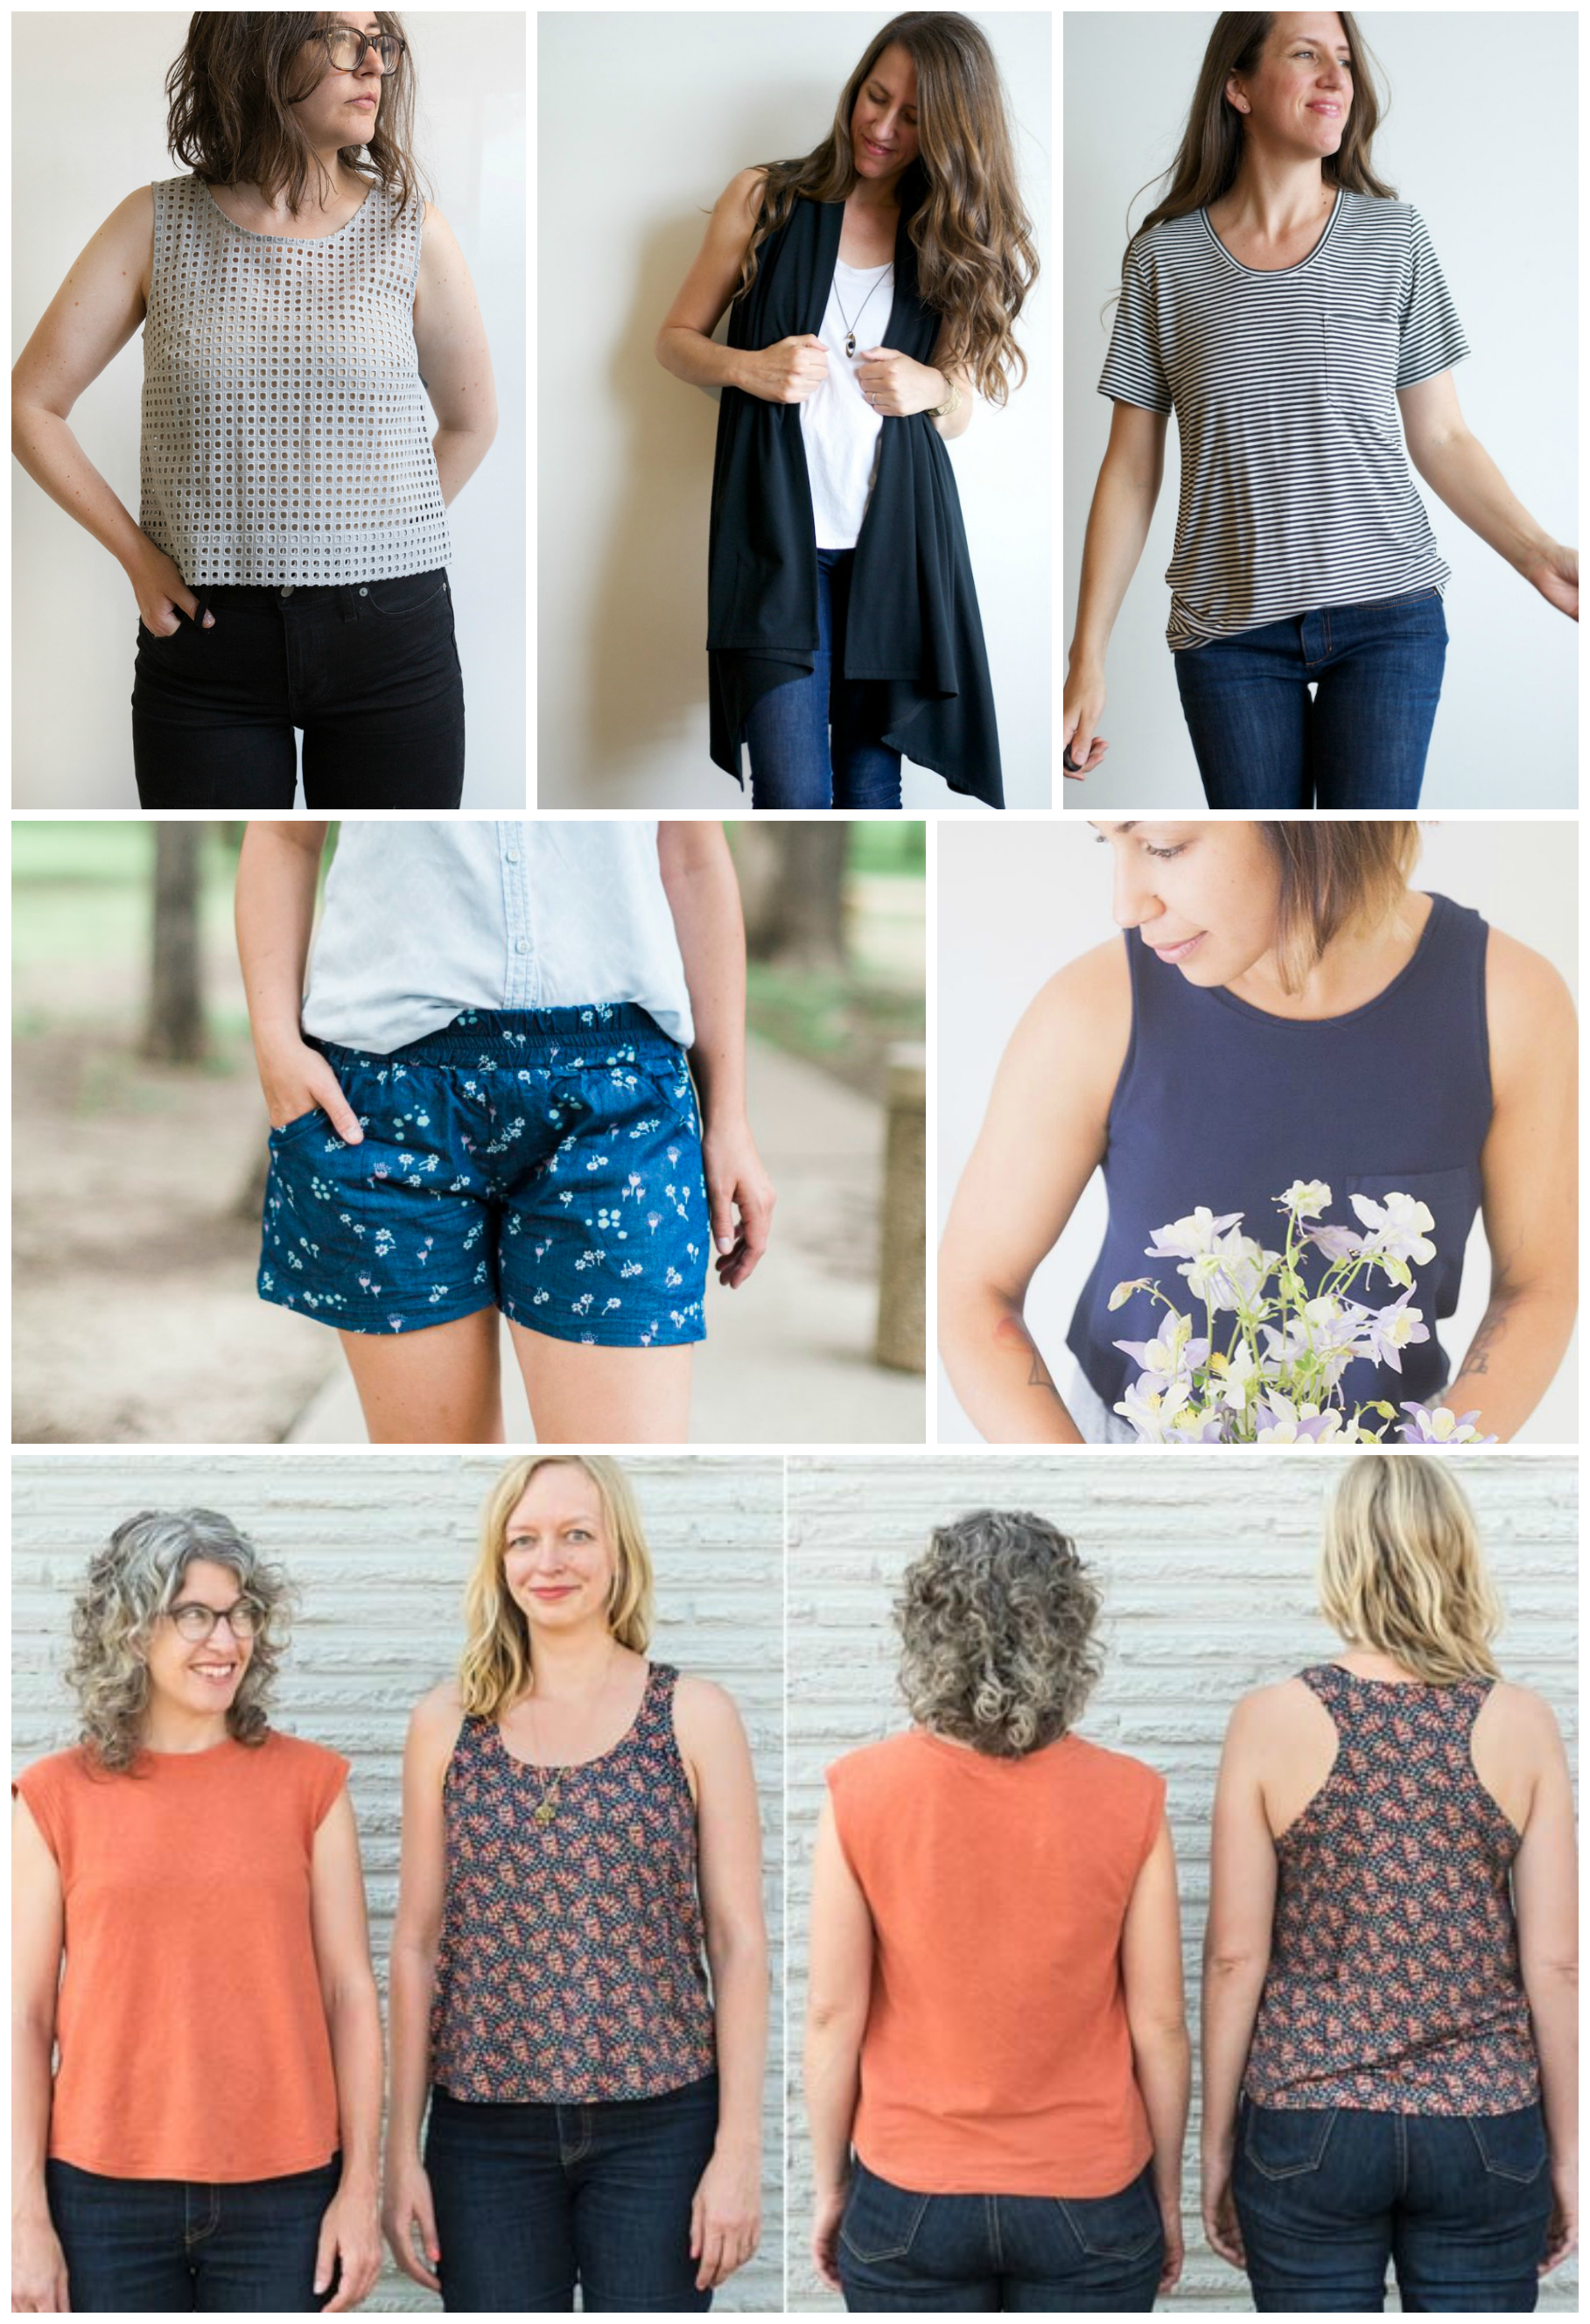 summer sewing patterns on VeryShannon.com